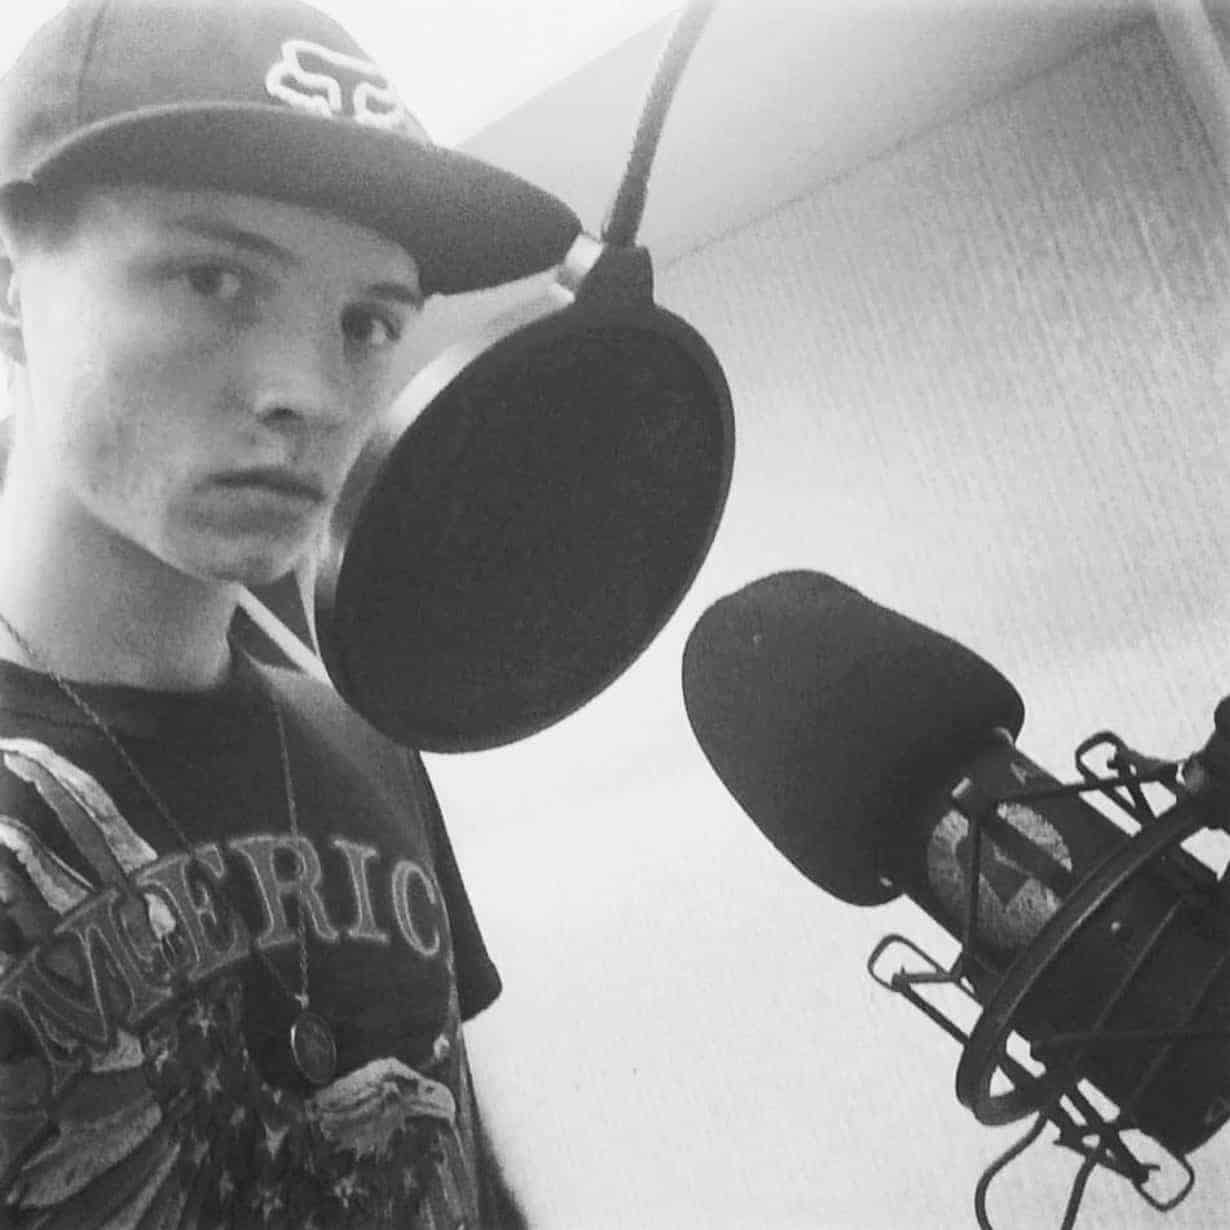 Rapper and Emcee, Master Malice on the mic